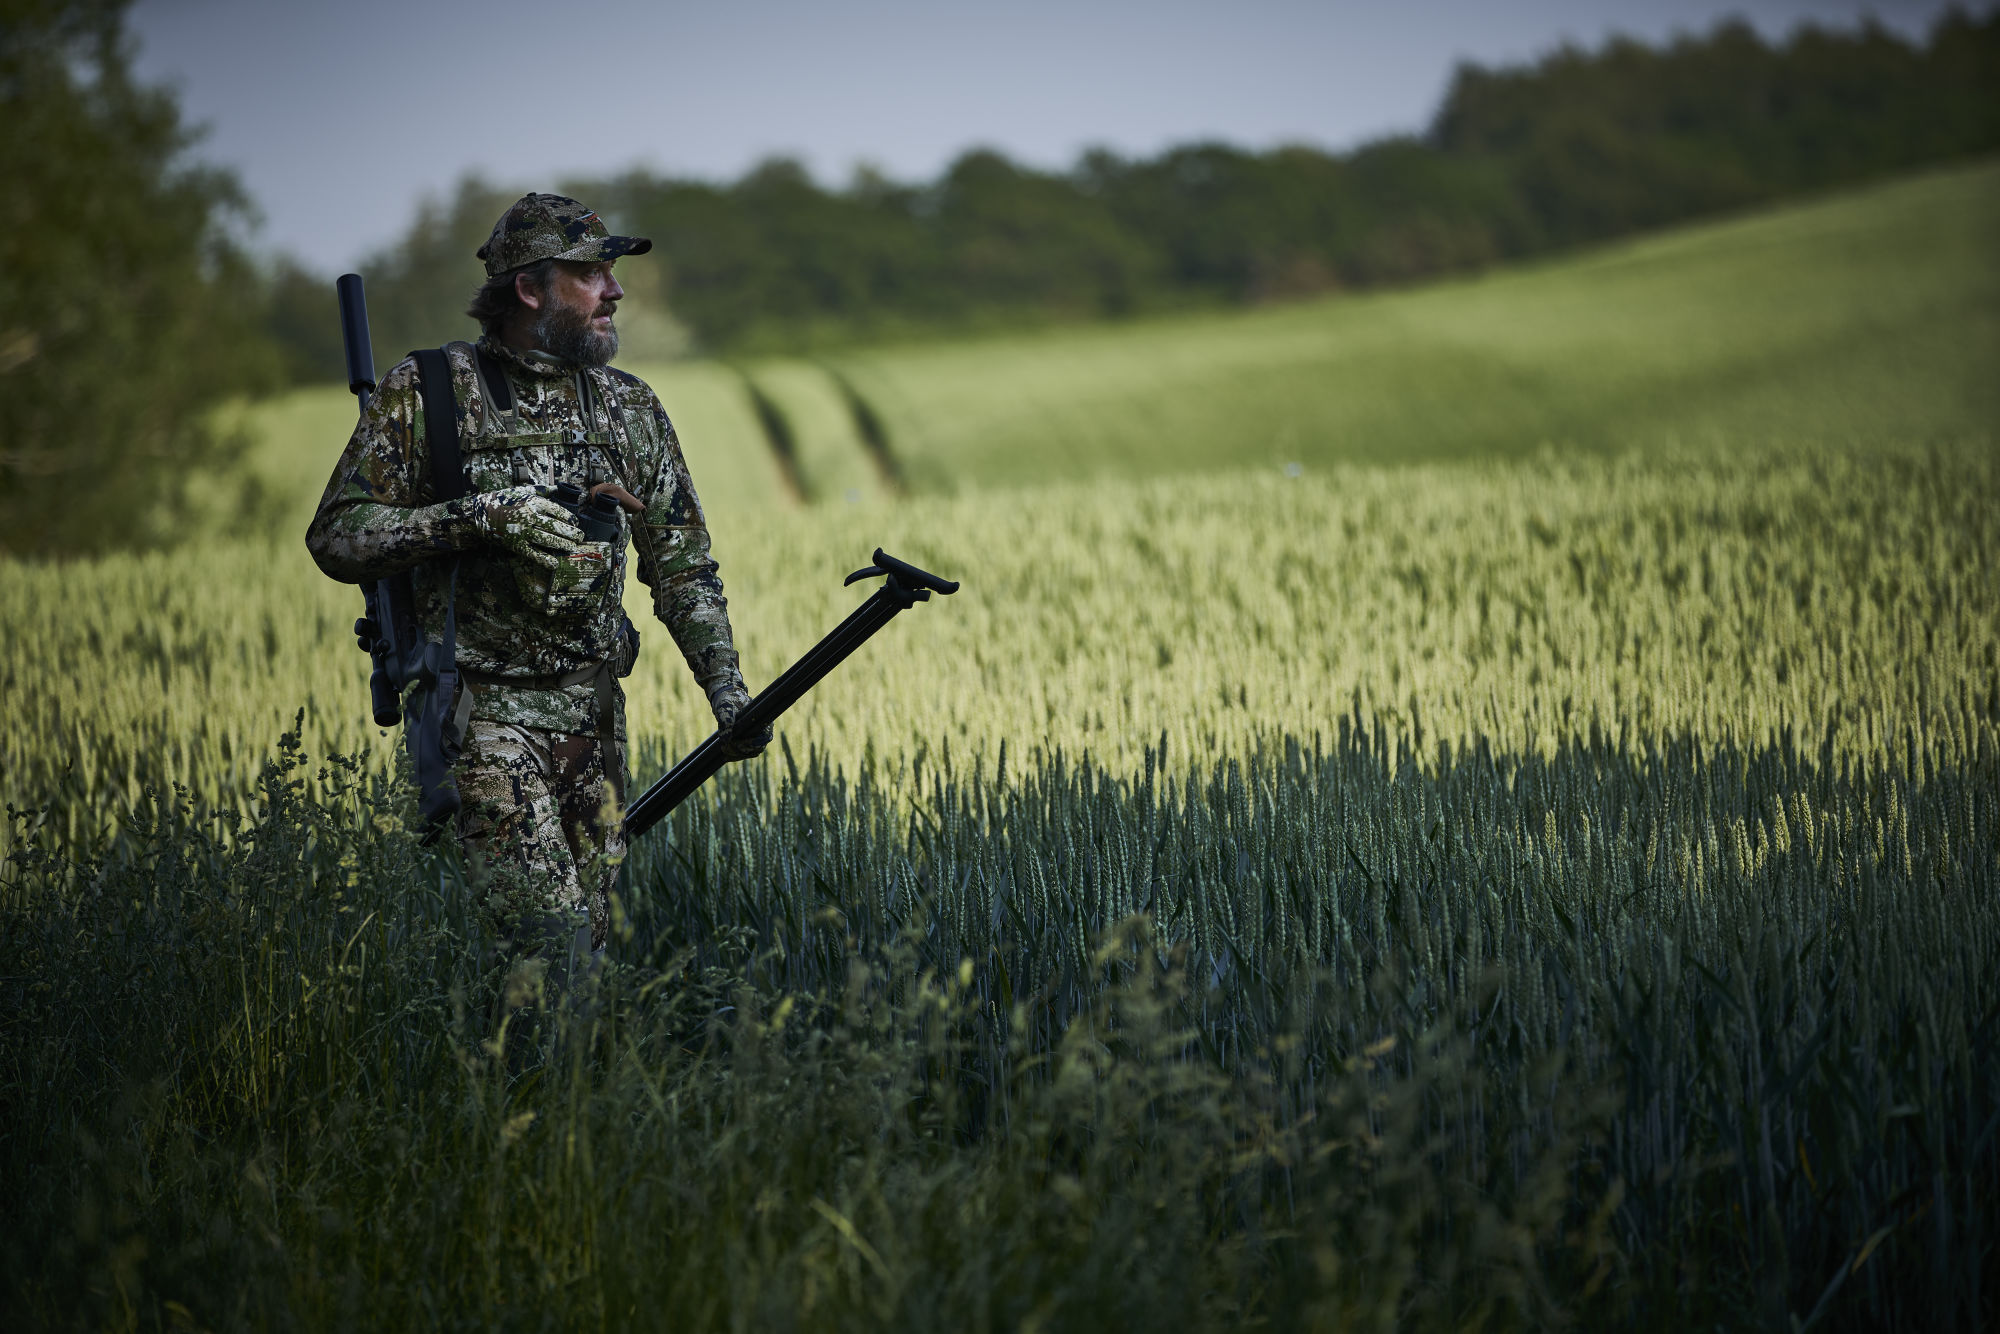 Nikolaj Juel rocks cooking, music, and hunting - Nikolaj Juel out hunting in the fields with the SWAROVSKI OPTIK Z8i